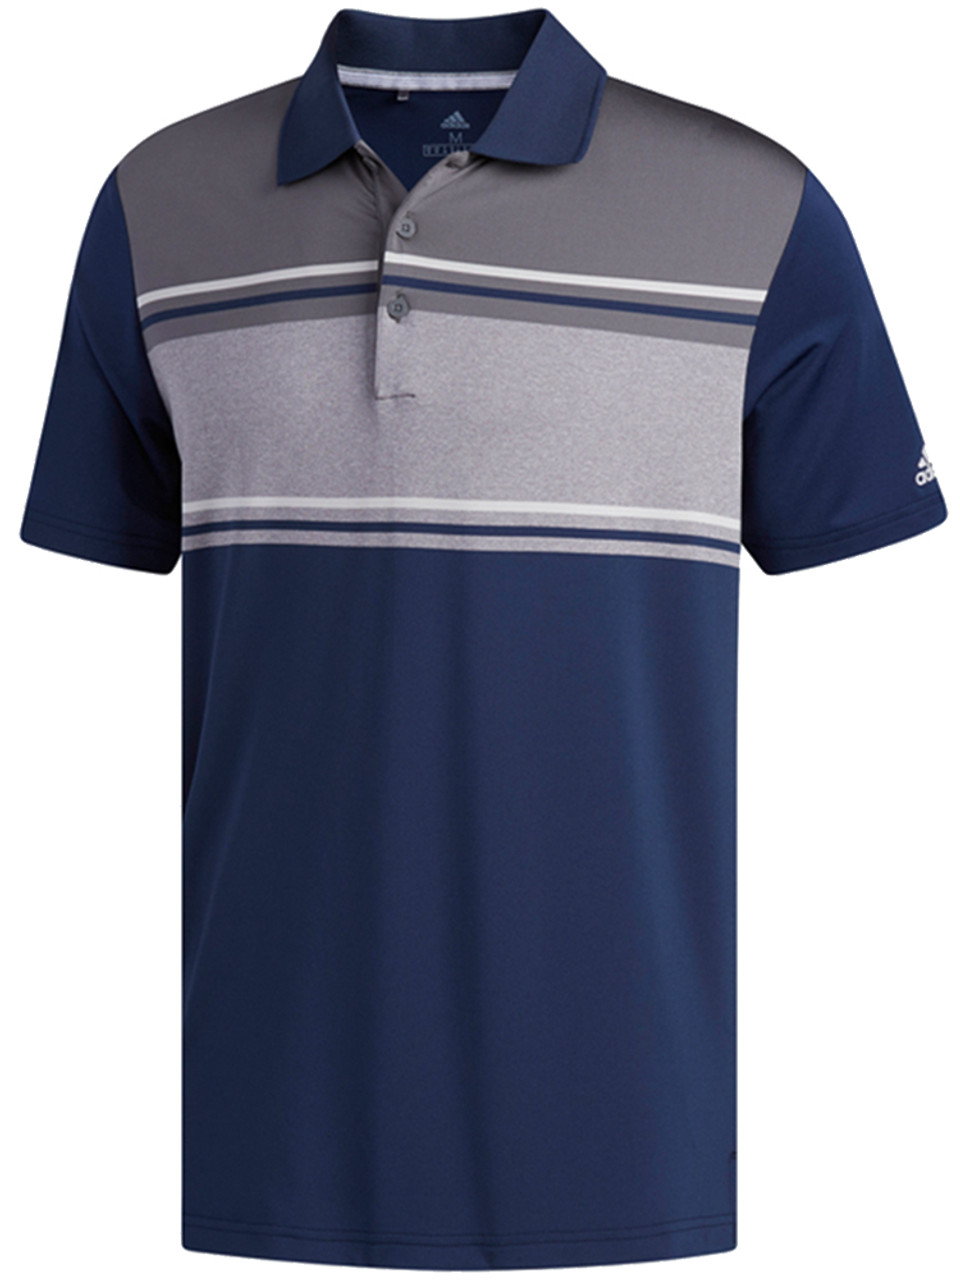 10ee2e6f Adidas Ultimate 2.0 Classic Merch Polo - Col Navy/Grey Five - Mens ...